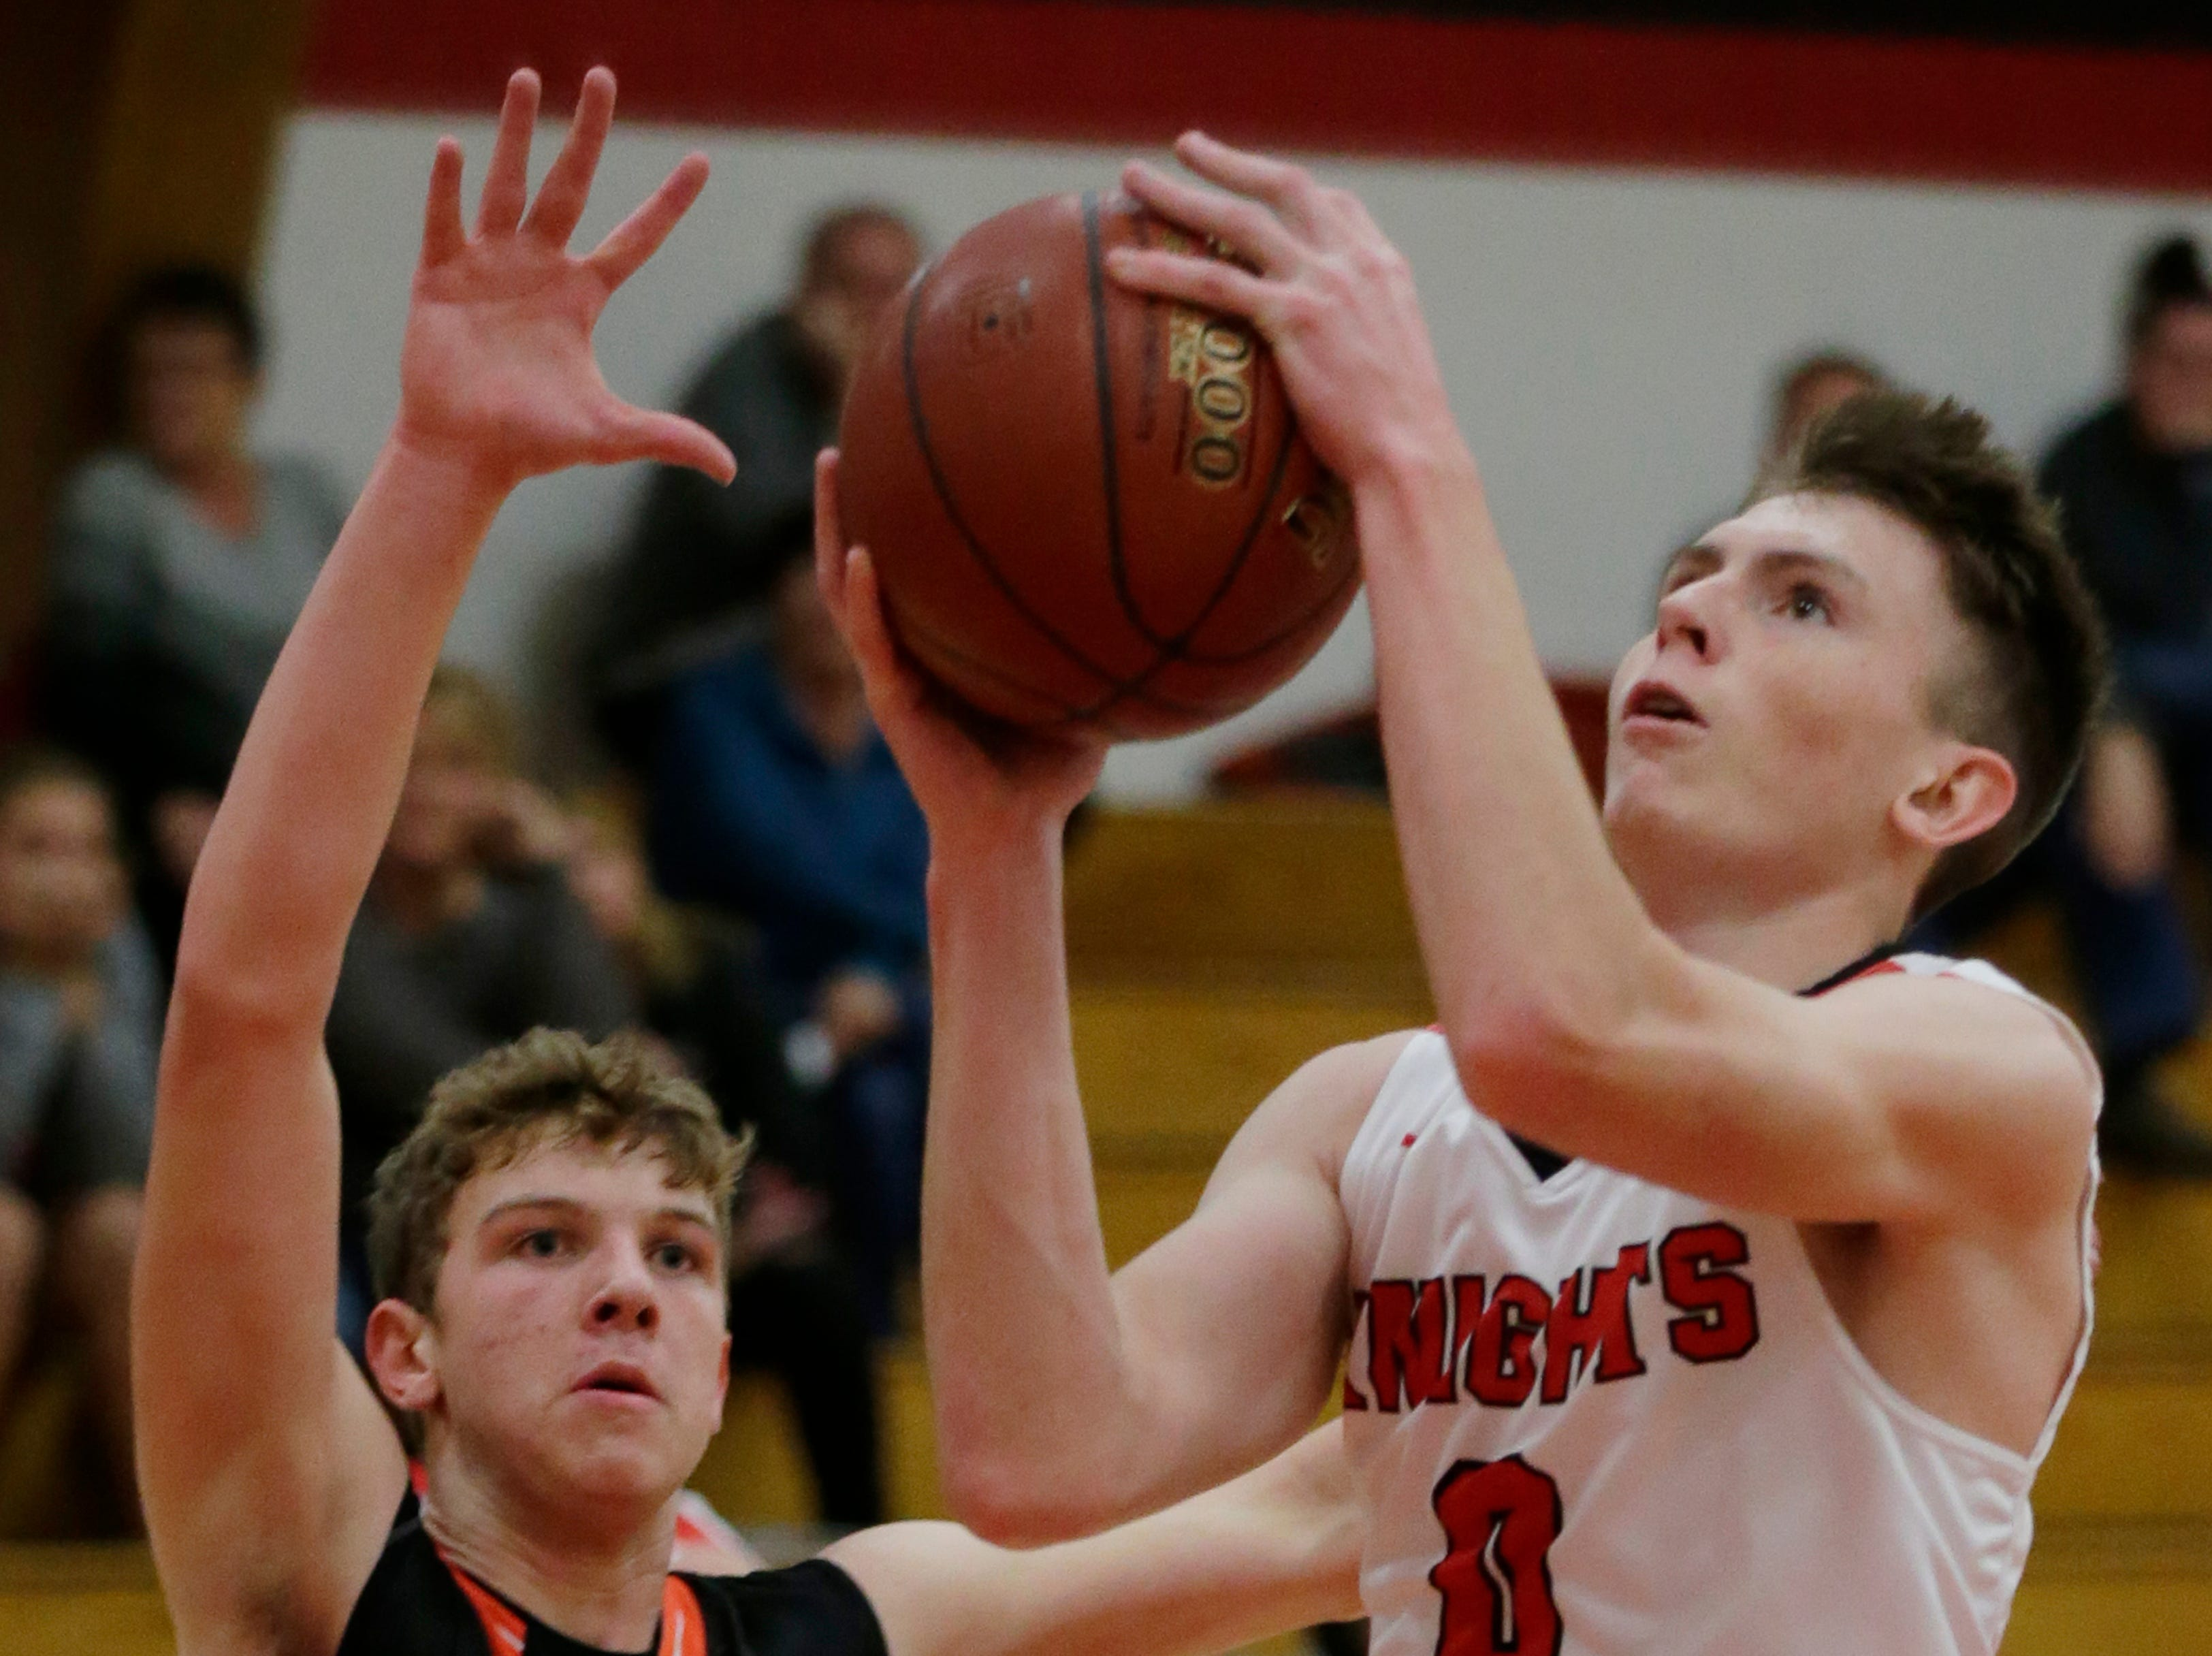 Lourdes Academy's Hayden Jones looks to the basket as he gets ready to shoot. Lourdes Academy Knights played Oakfield Oaks in boys basketball Tuesday, Dec. 4, 2018, at Lourdes Castle in Oshkosh, Wis.